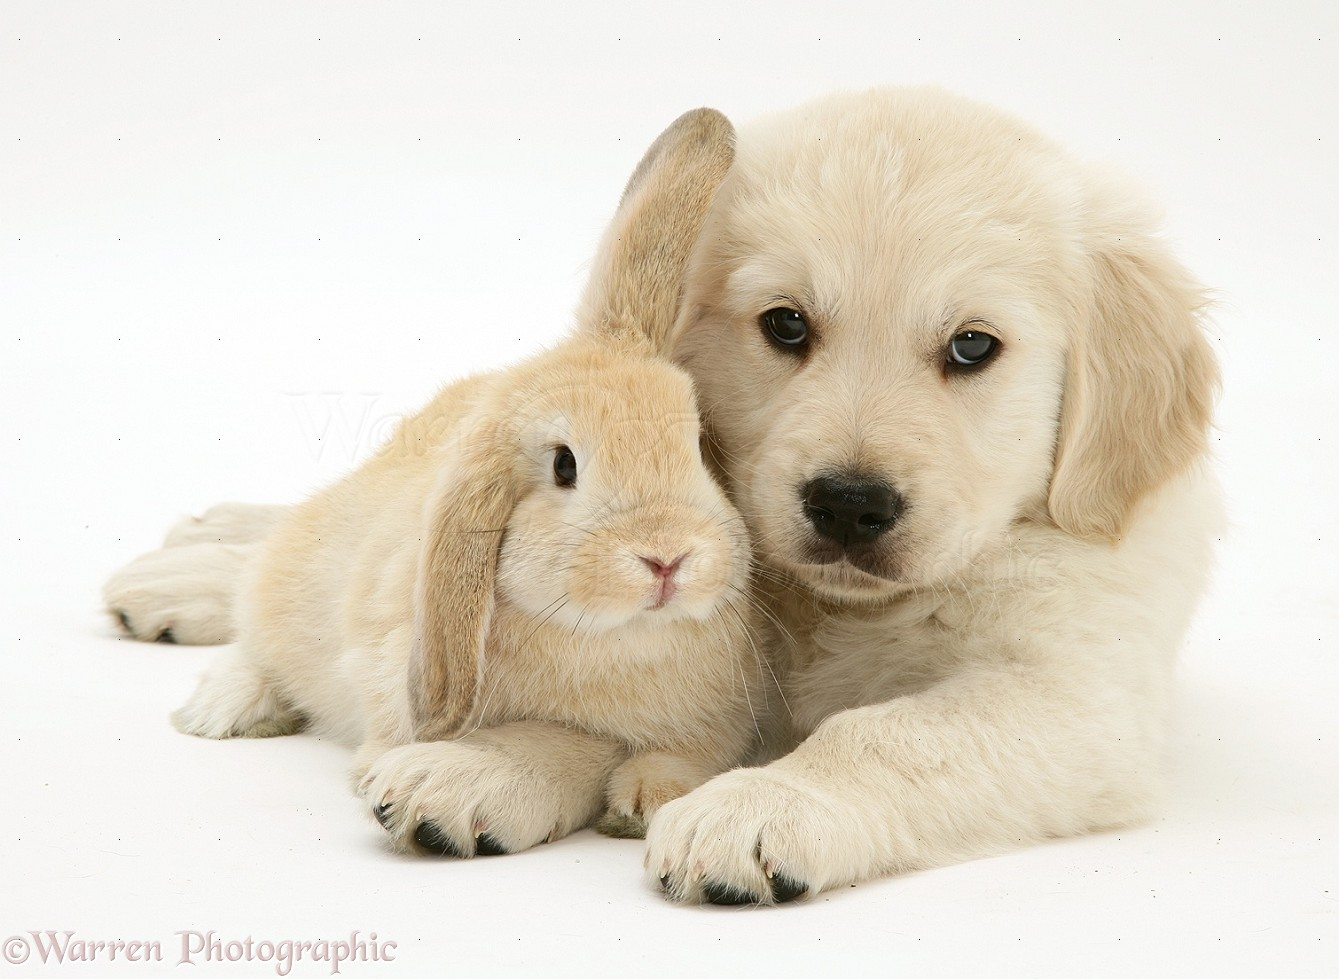 Pets Golden Retriever Pup With Young Sandy Lop Rabbit Photo Wp21720